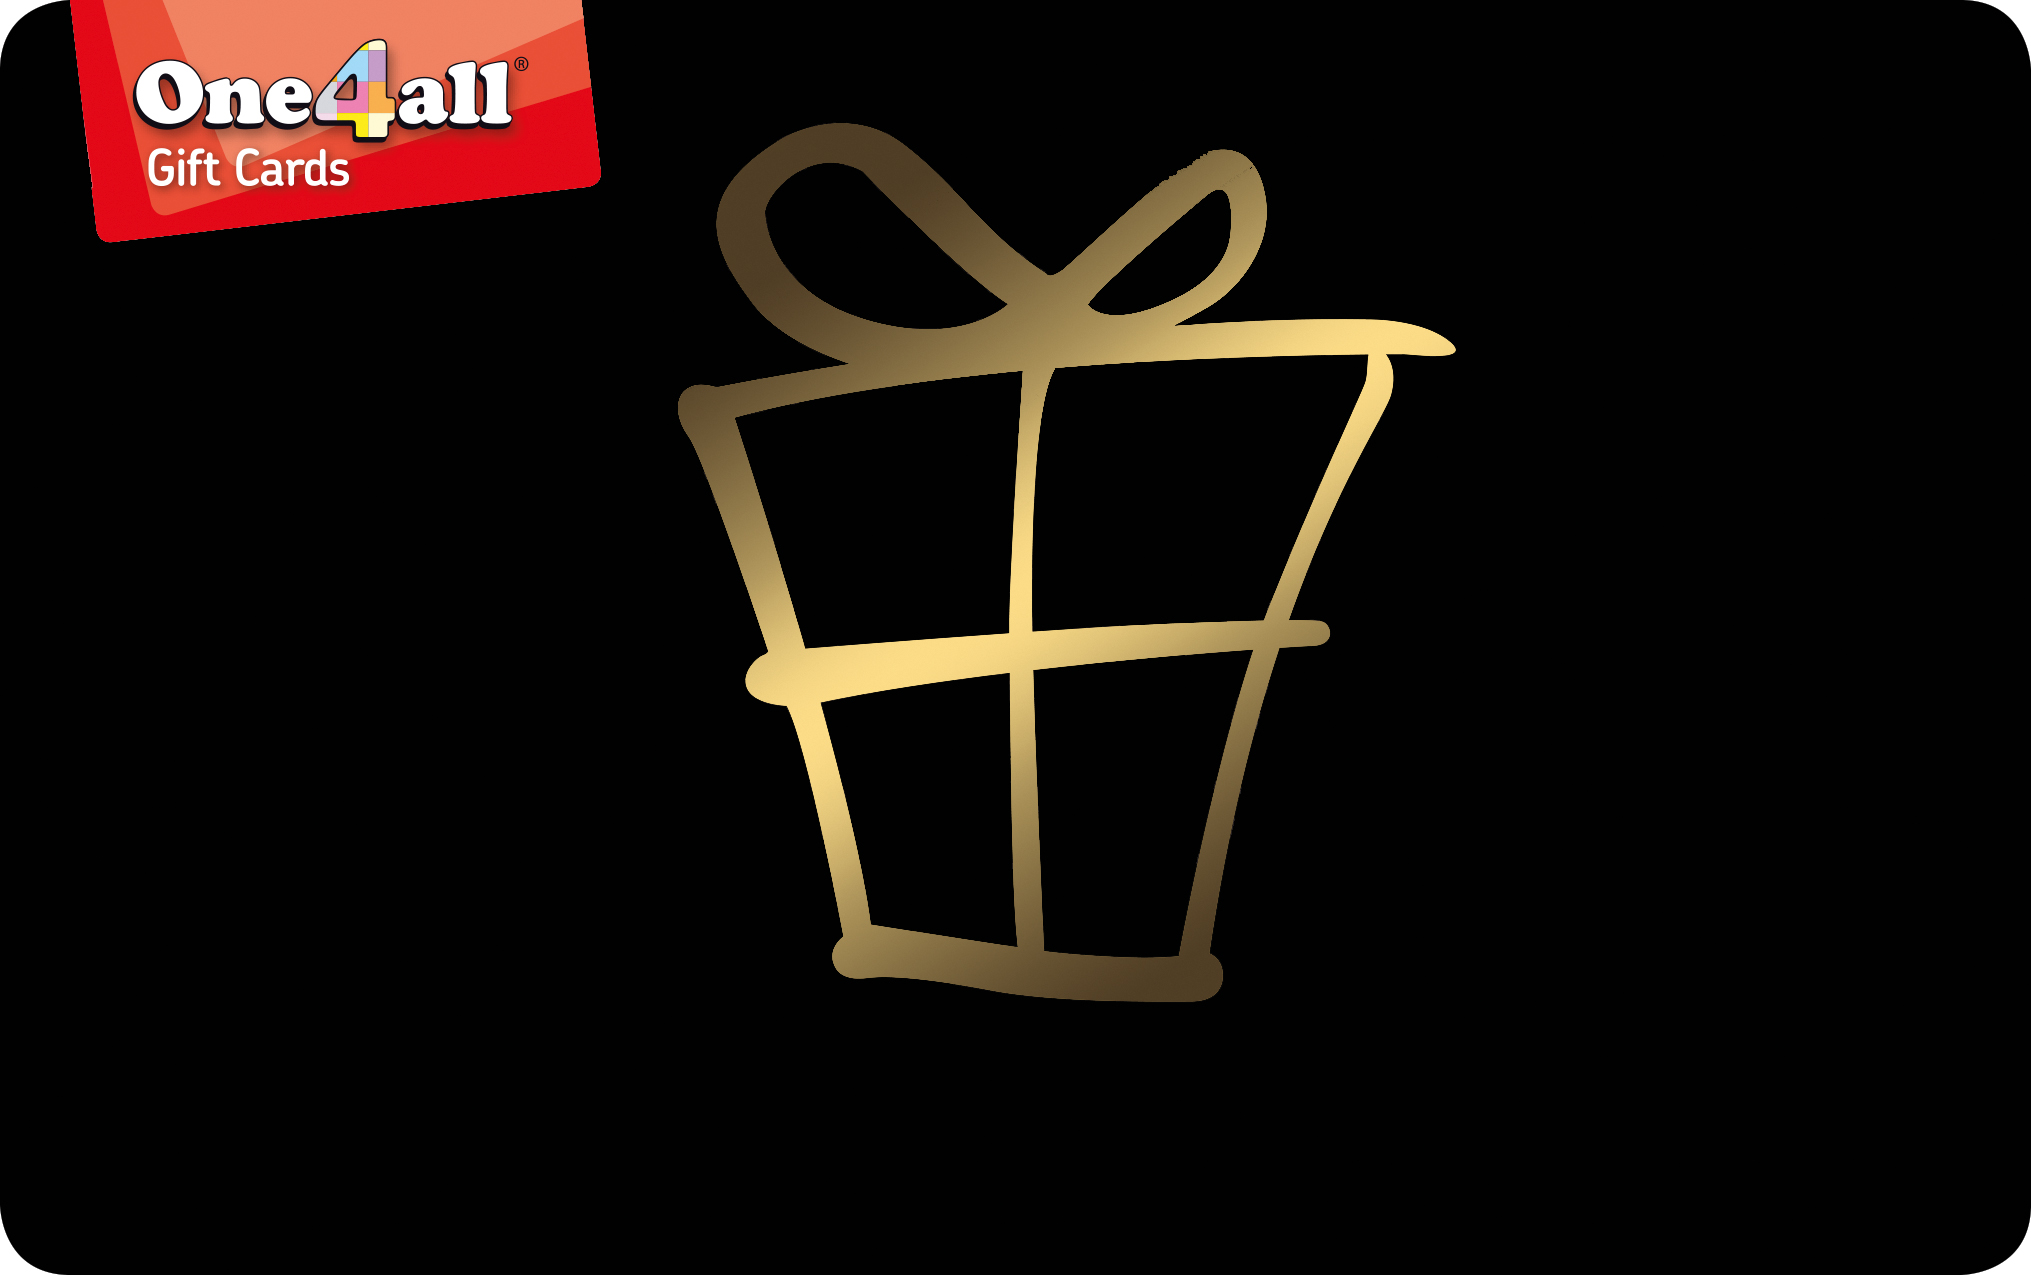 One4all Gift Card | Post Office